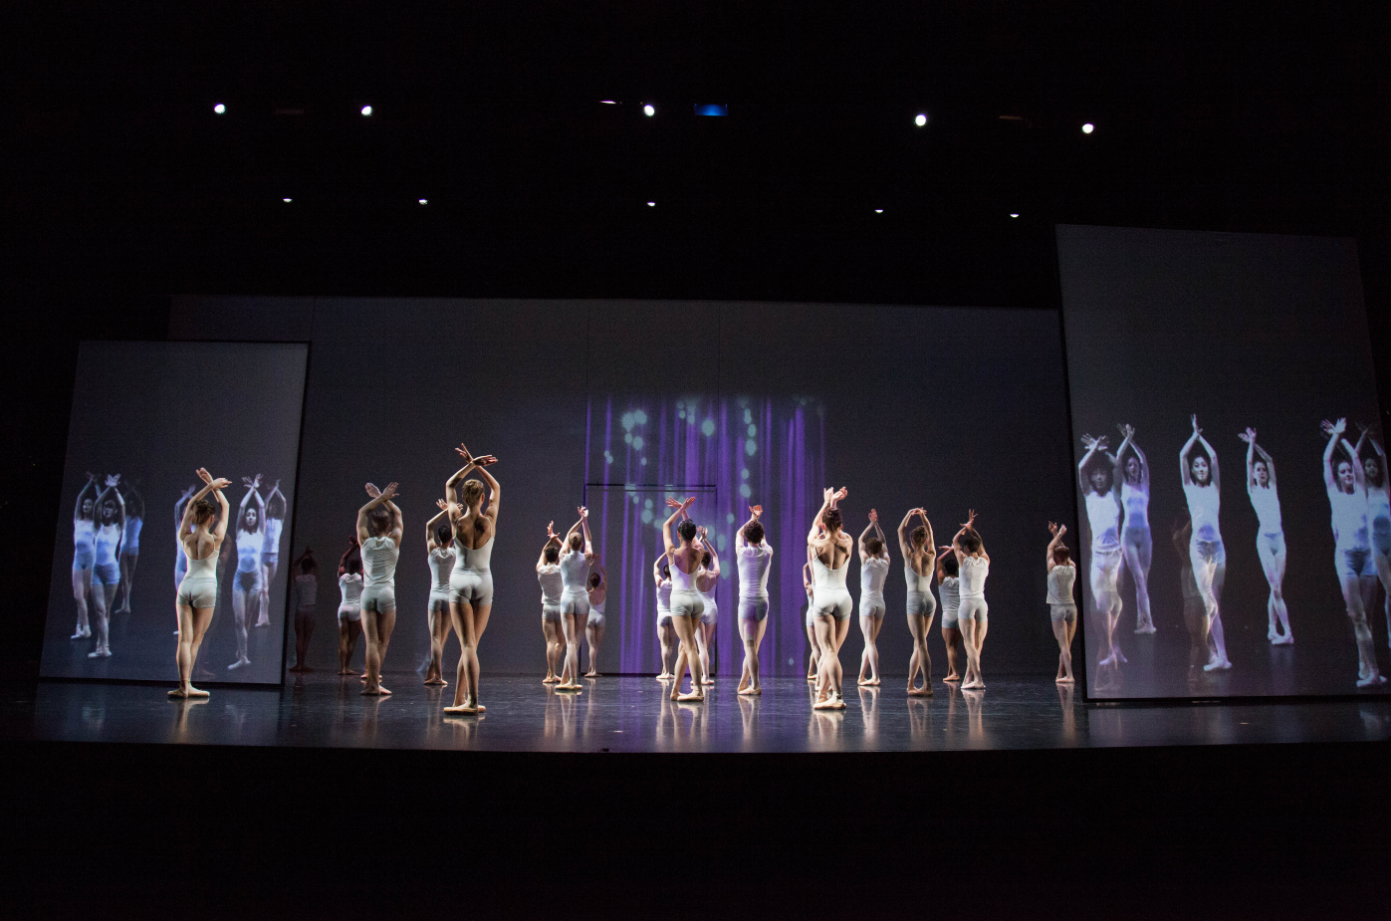 NBS dancers perform  STREAM,  a work that was choreographed by Shaun Amyot and Michael Schumacher for AI 12.   STREAM  featured dancers in Toronto and Amsterdam, performing and interacting together through a live-streamed feed.